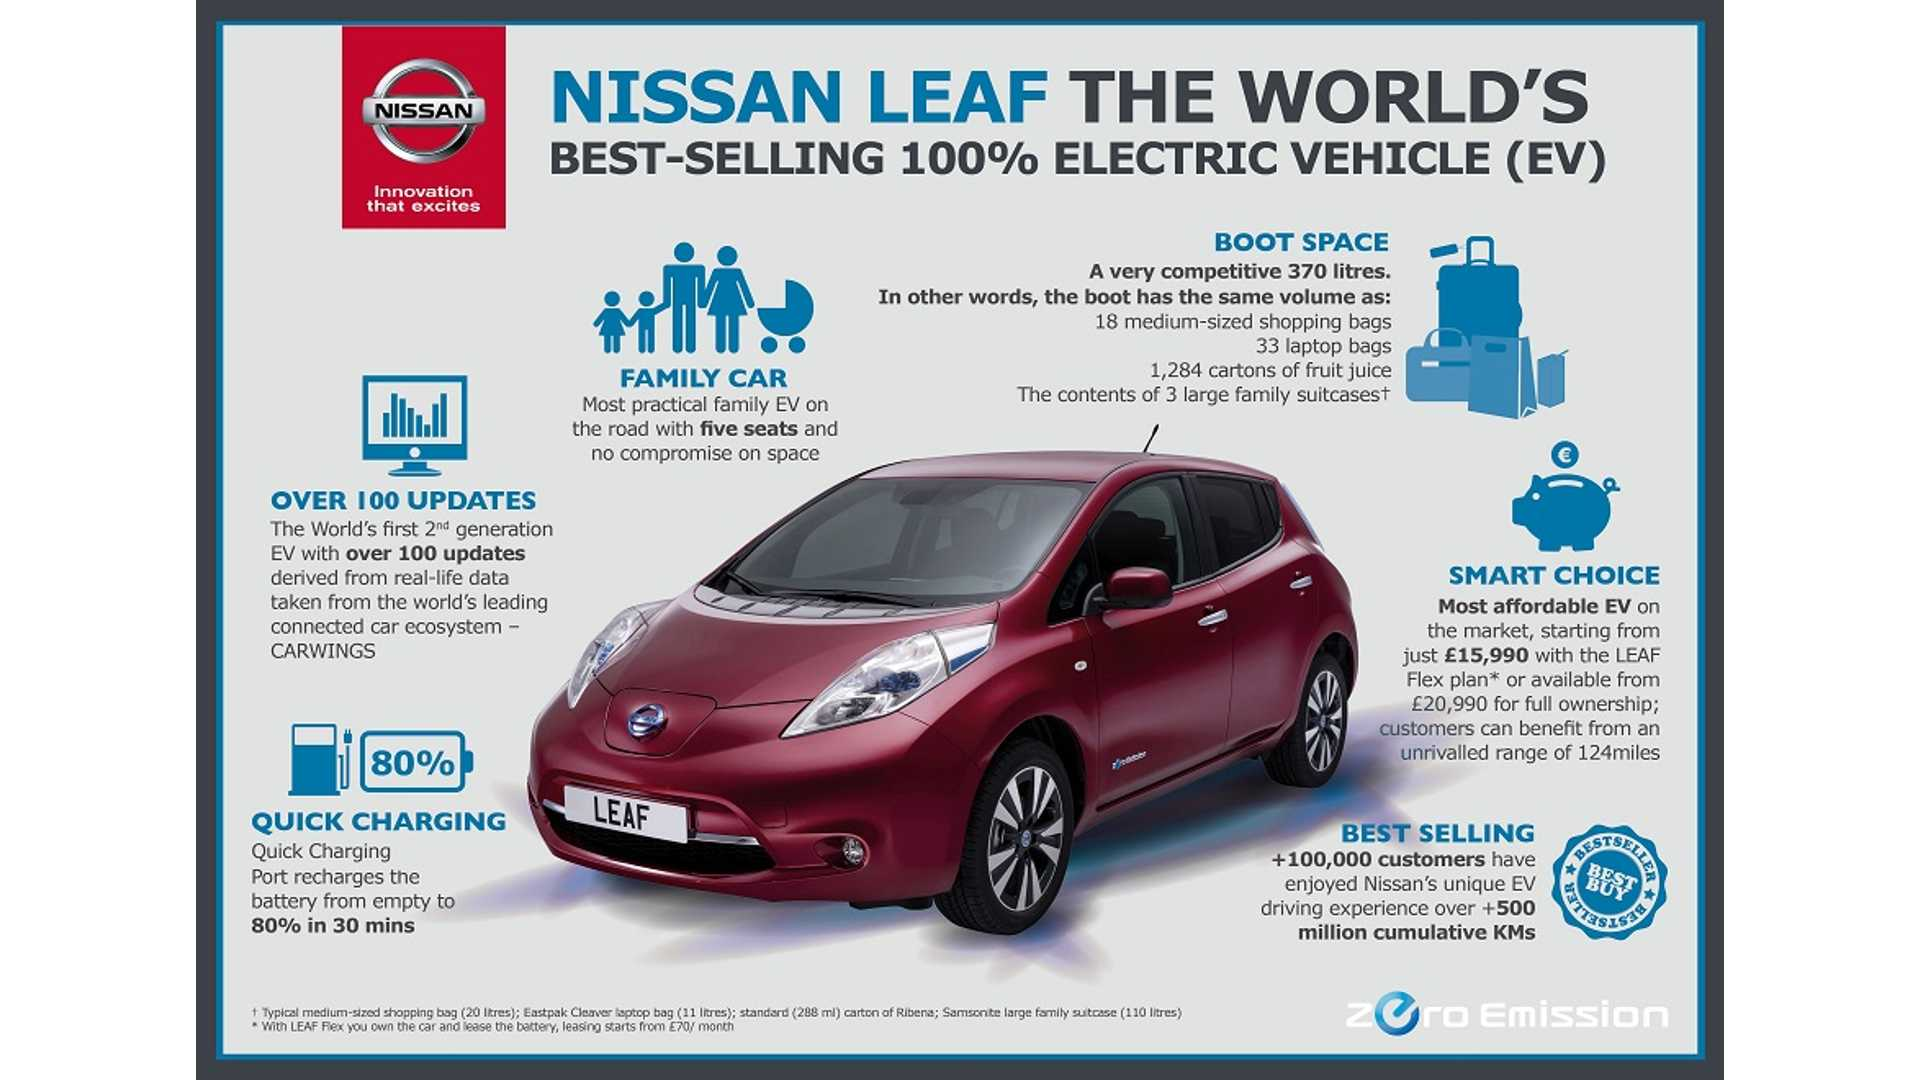 worlds best selling electric vehicle - 1000×700